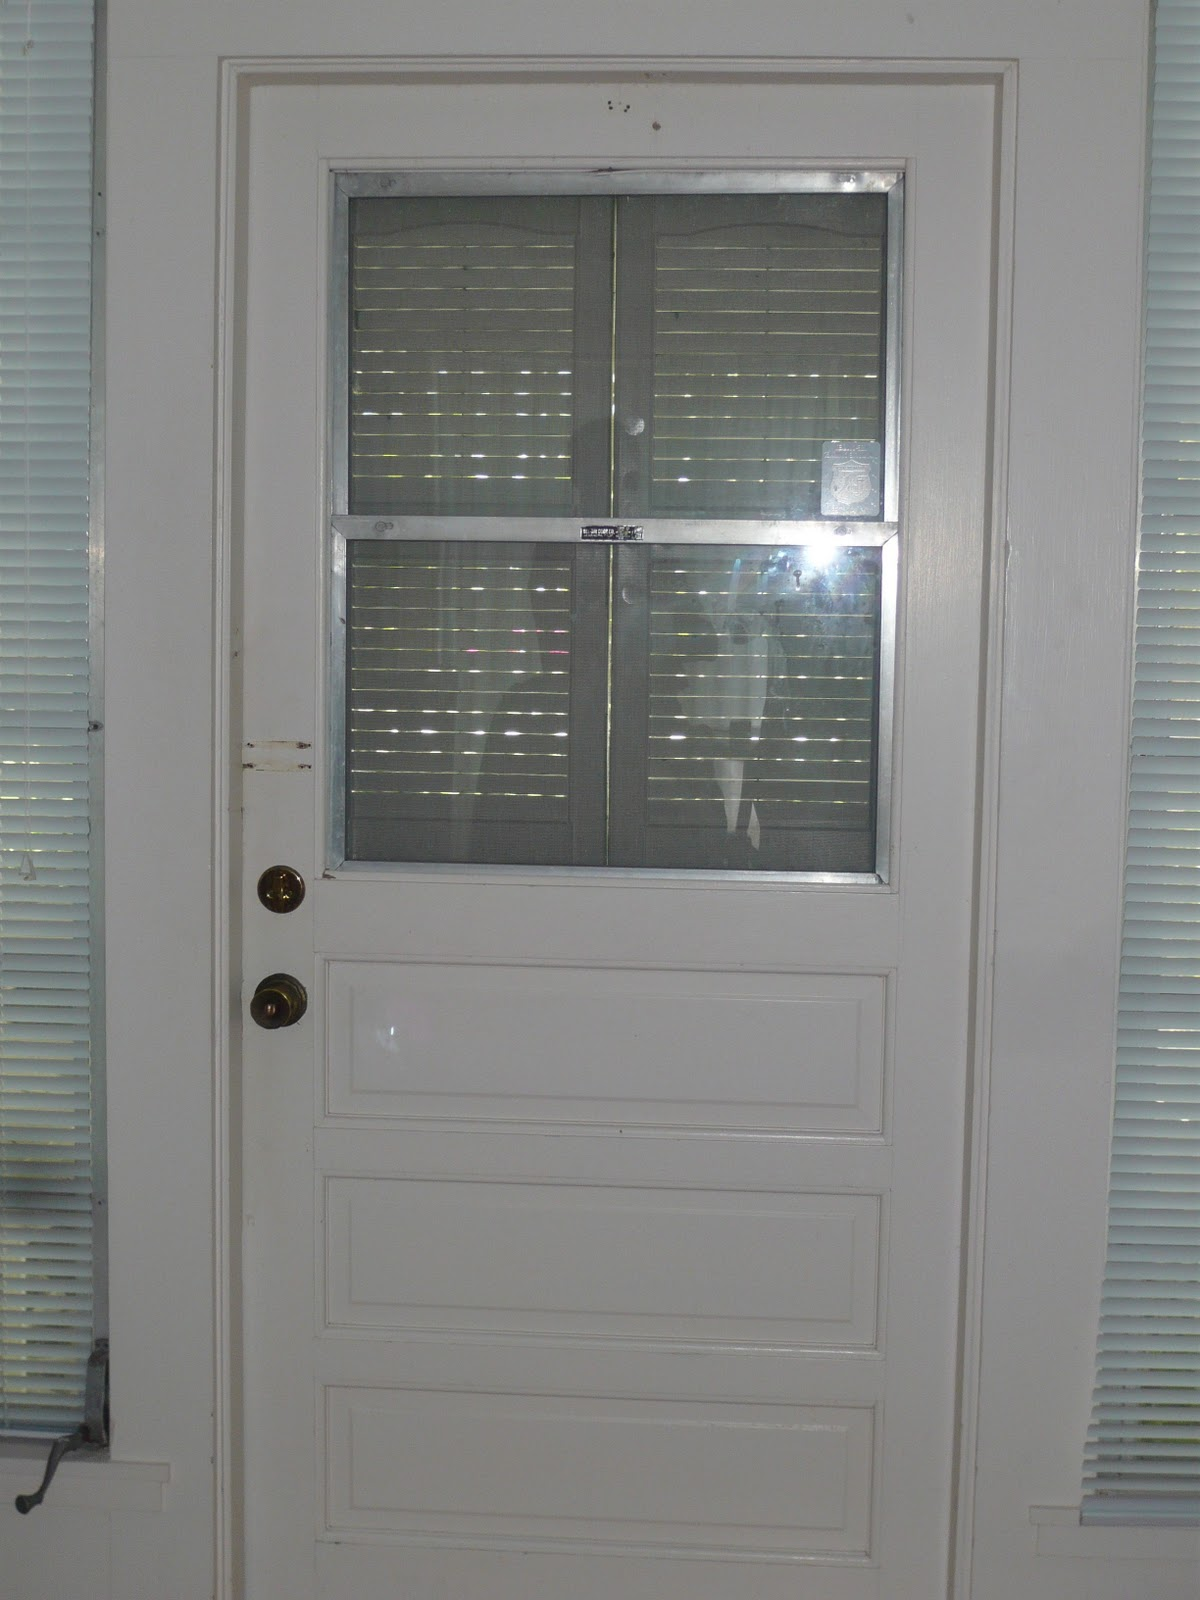 1600 #576874 As You Can See It's Your Standard Door With An Aluminum Screen Insert. wallpaper Discount Front Doors 41451200